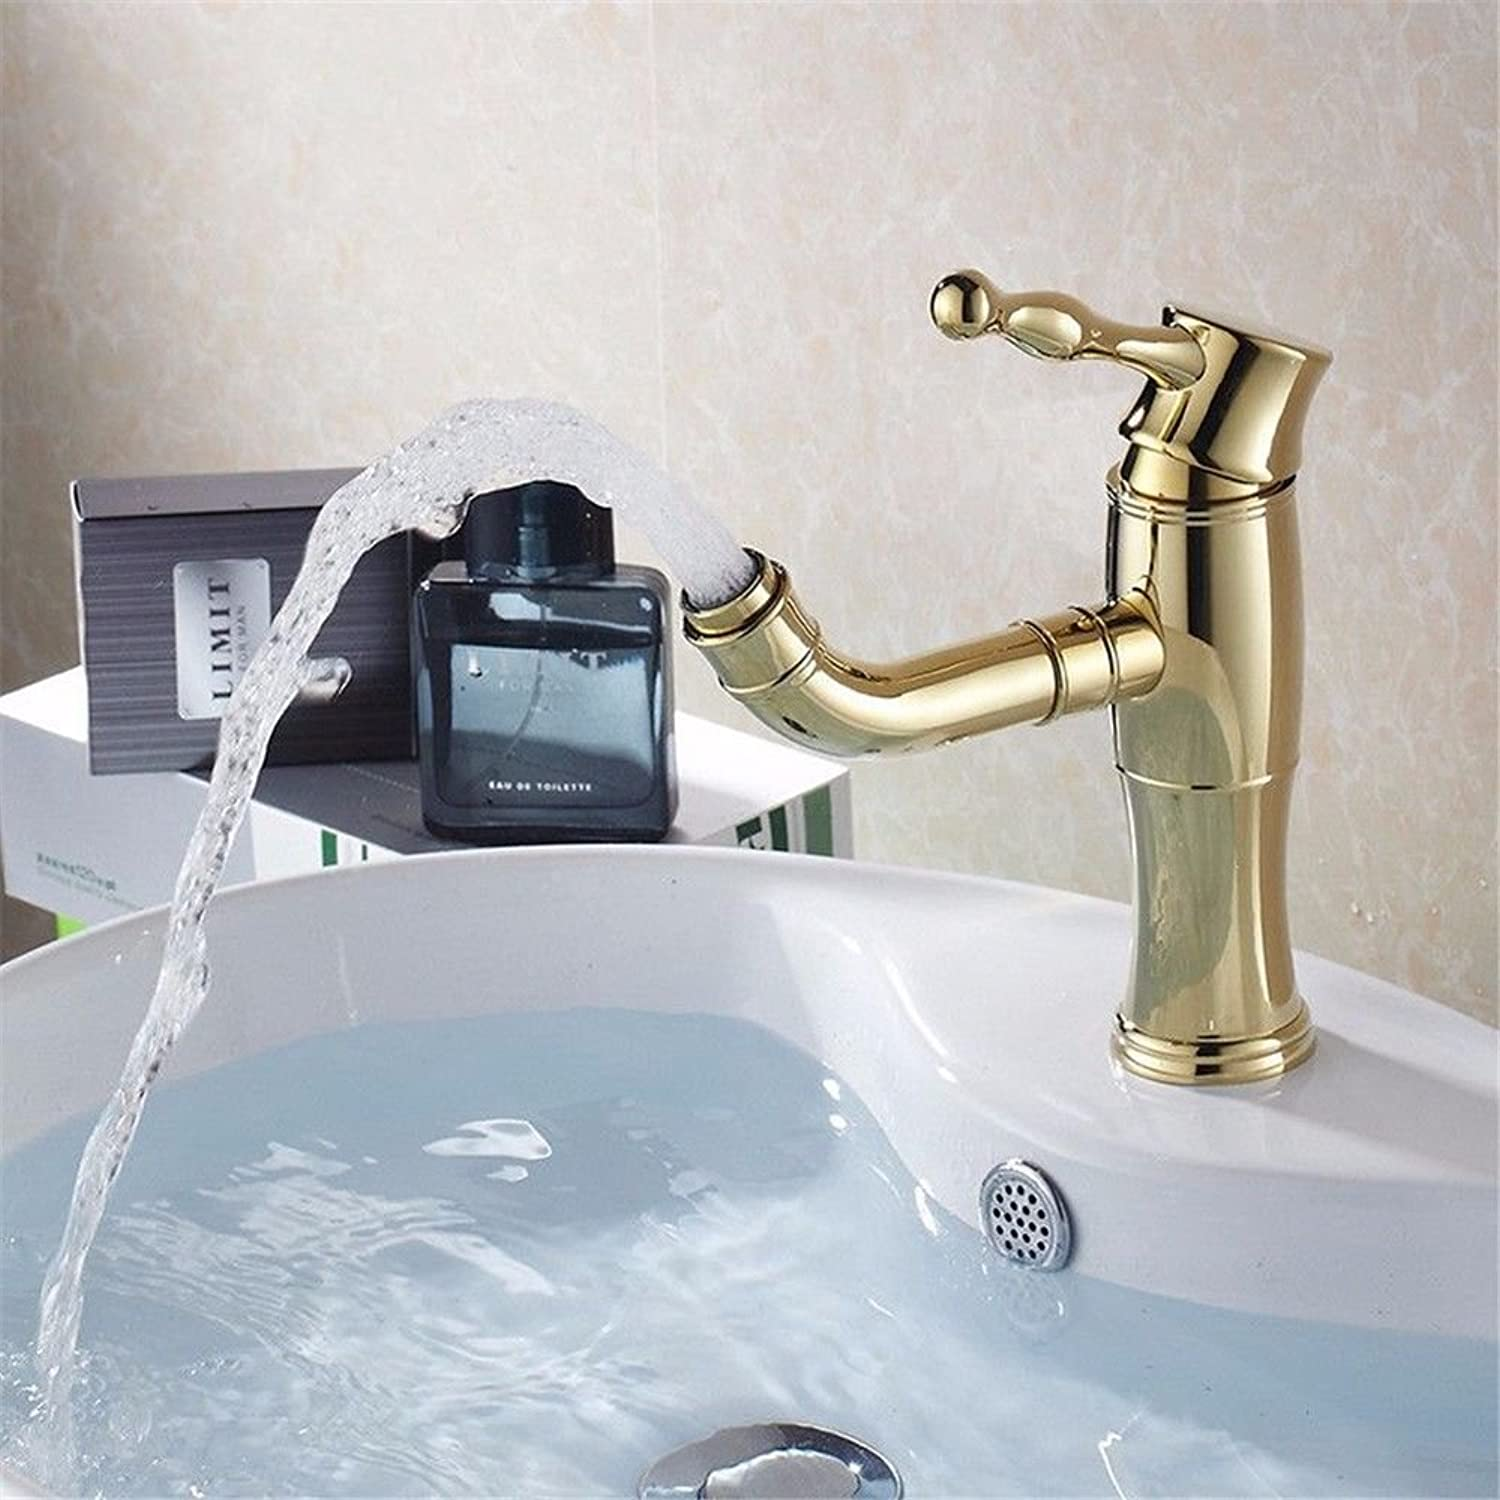 NewBorn Faucet Water Taps Hot And Cold Water Retro Wash gold Hot And Cold Basin Tap To redate The Water Nozzle